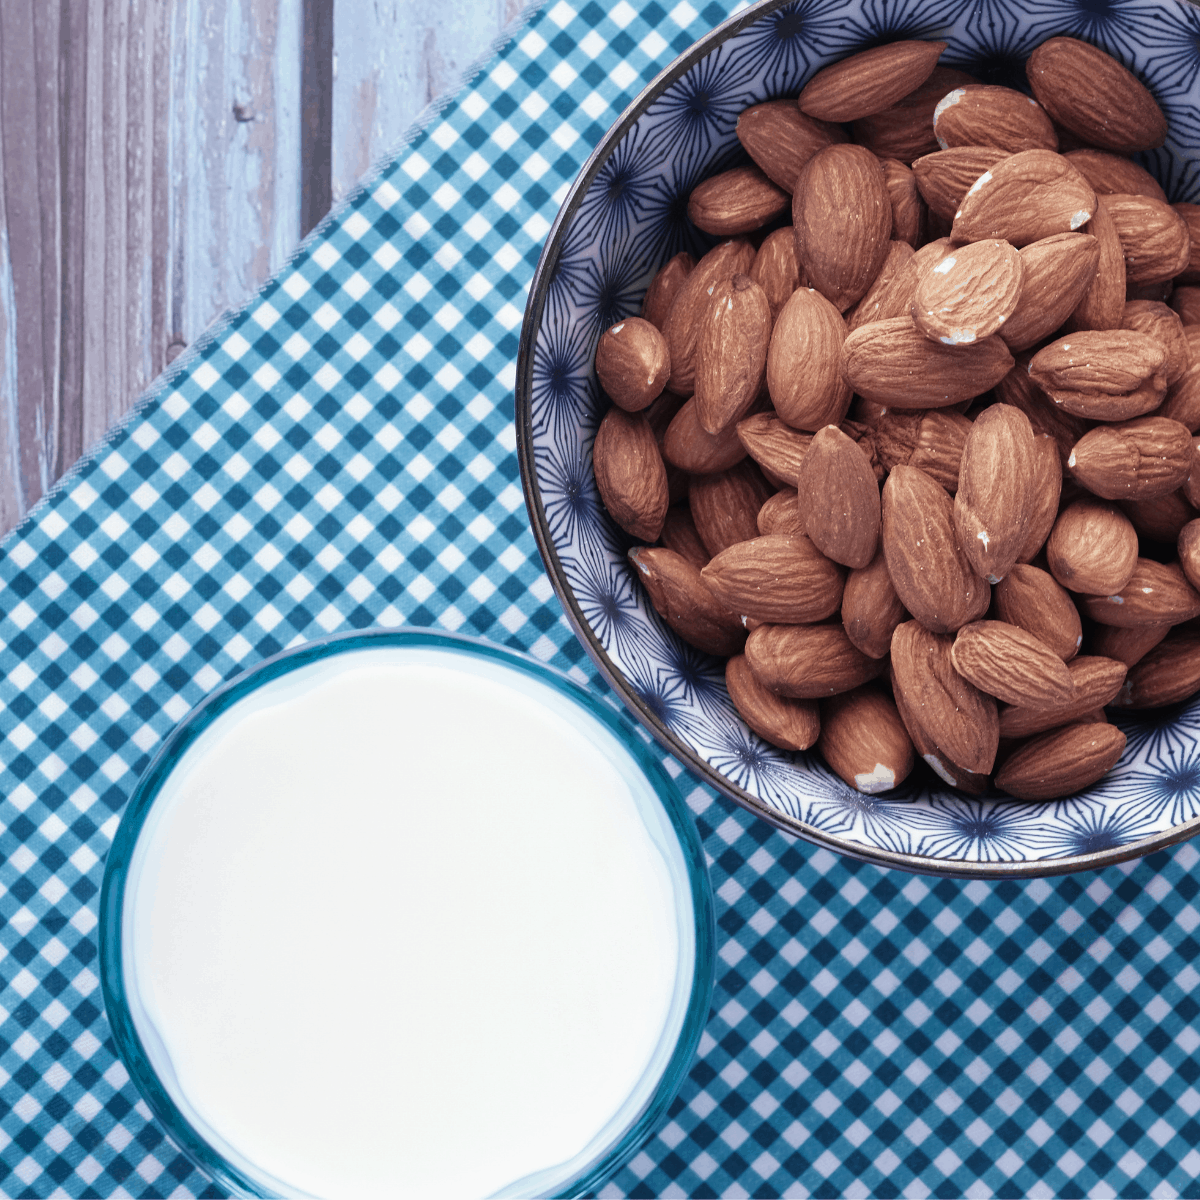 almond milk substitute with almonds in a cup